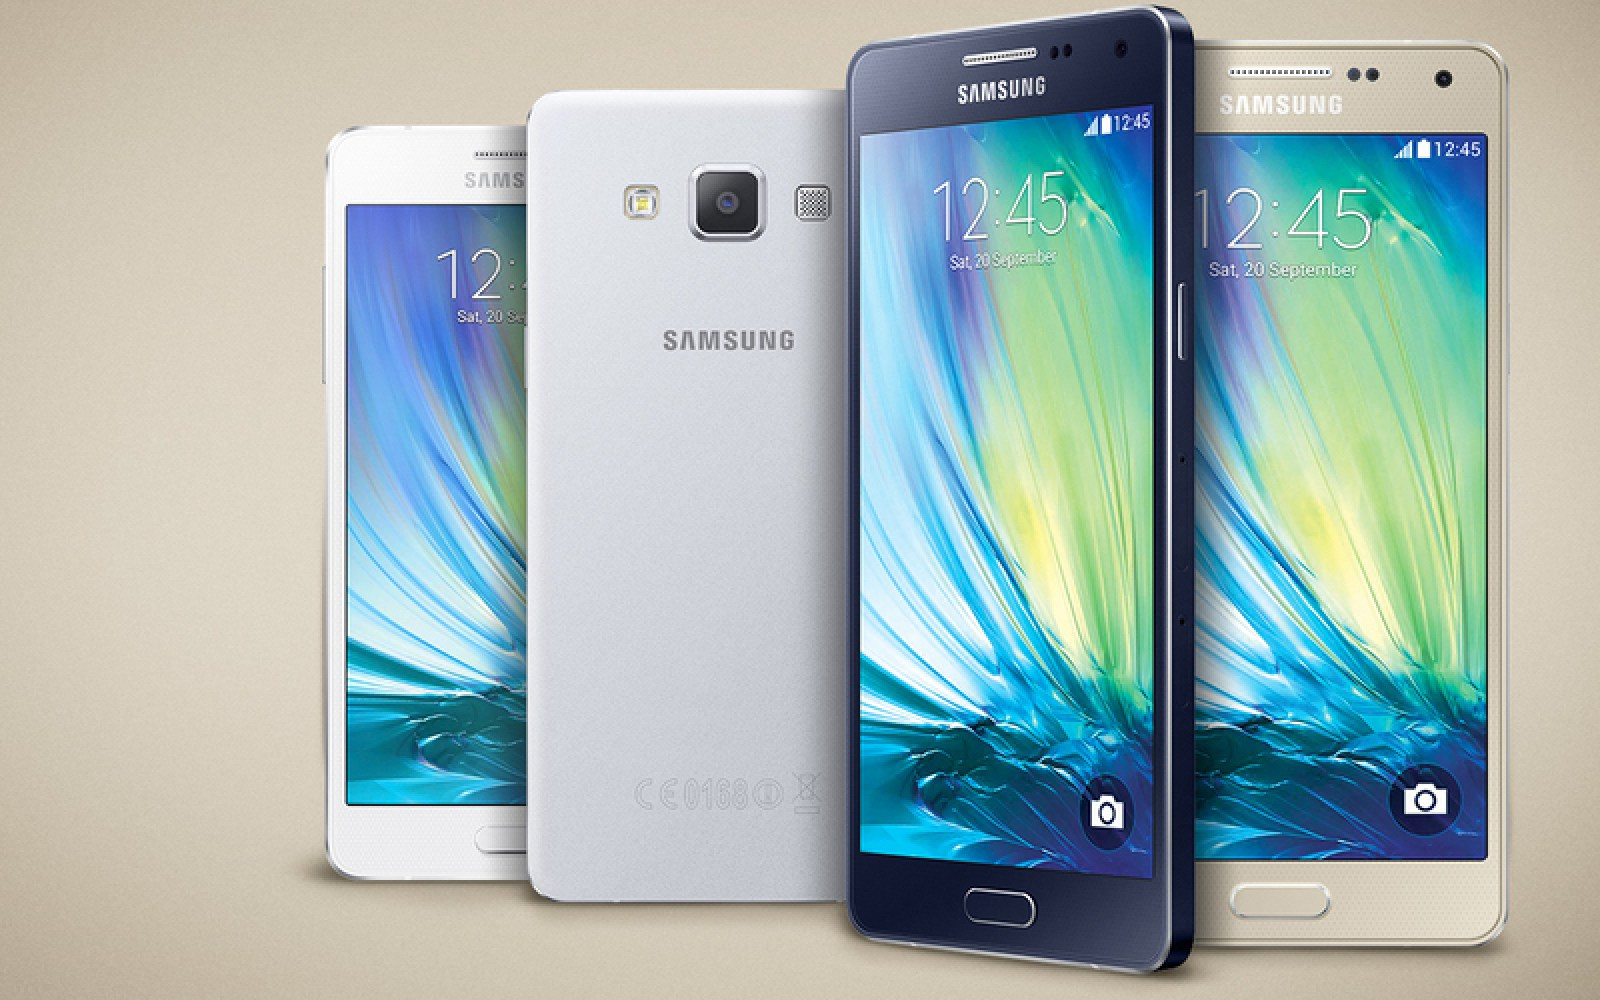 Upcoming Galaxy Alpha benchmark results leak, suggest full HD screen and octa-core Exynos chip in mid-range package